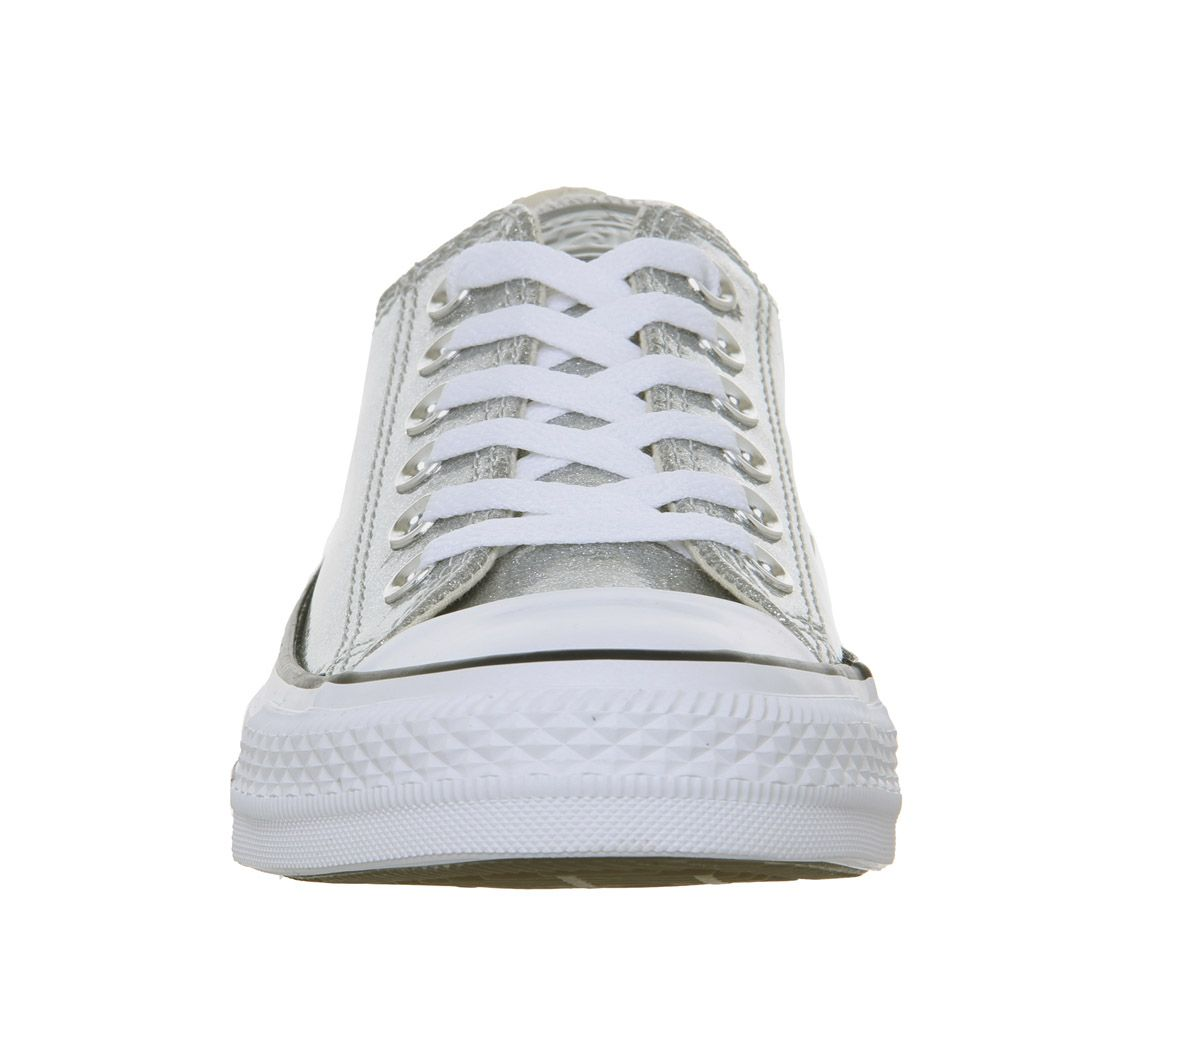 Womens-Converse-Converse-All-Star-Low-Trainers-Silver-White-Trainers-Shoes thumbnail 6